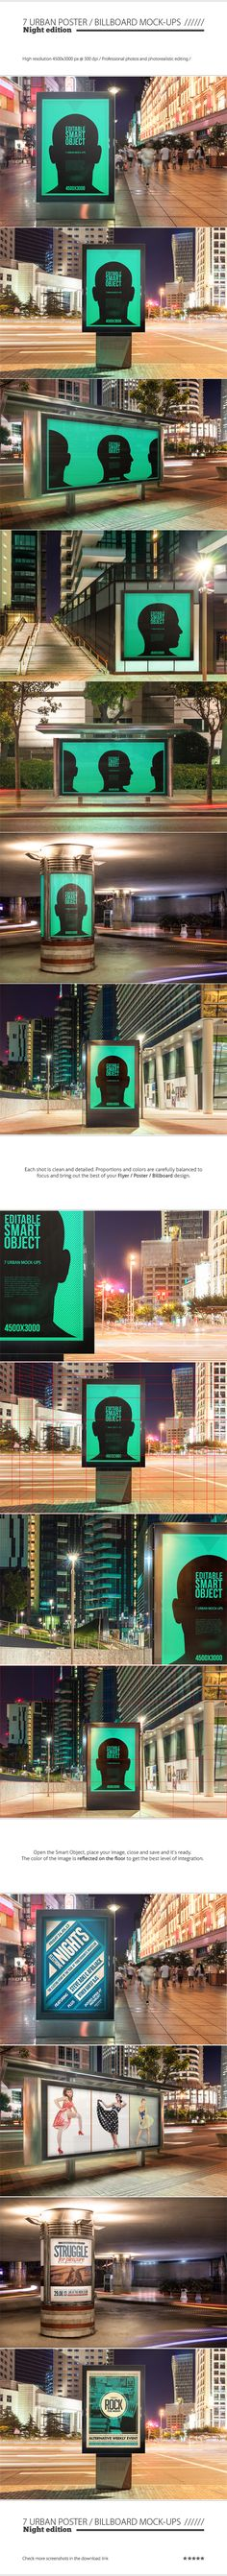 Urban Flyer / Poster / Billboard MockUp - Night Edition by Nuwan Panditha, via Behance